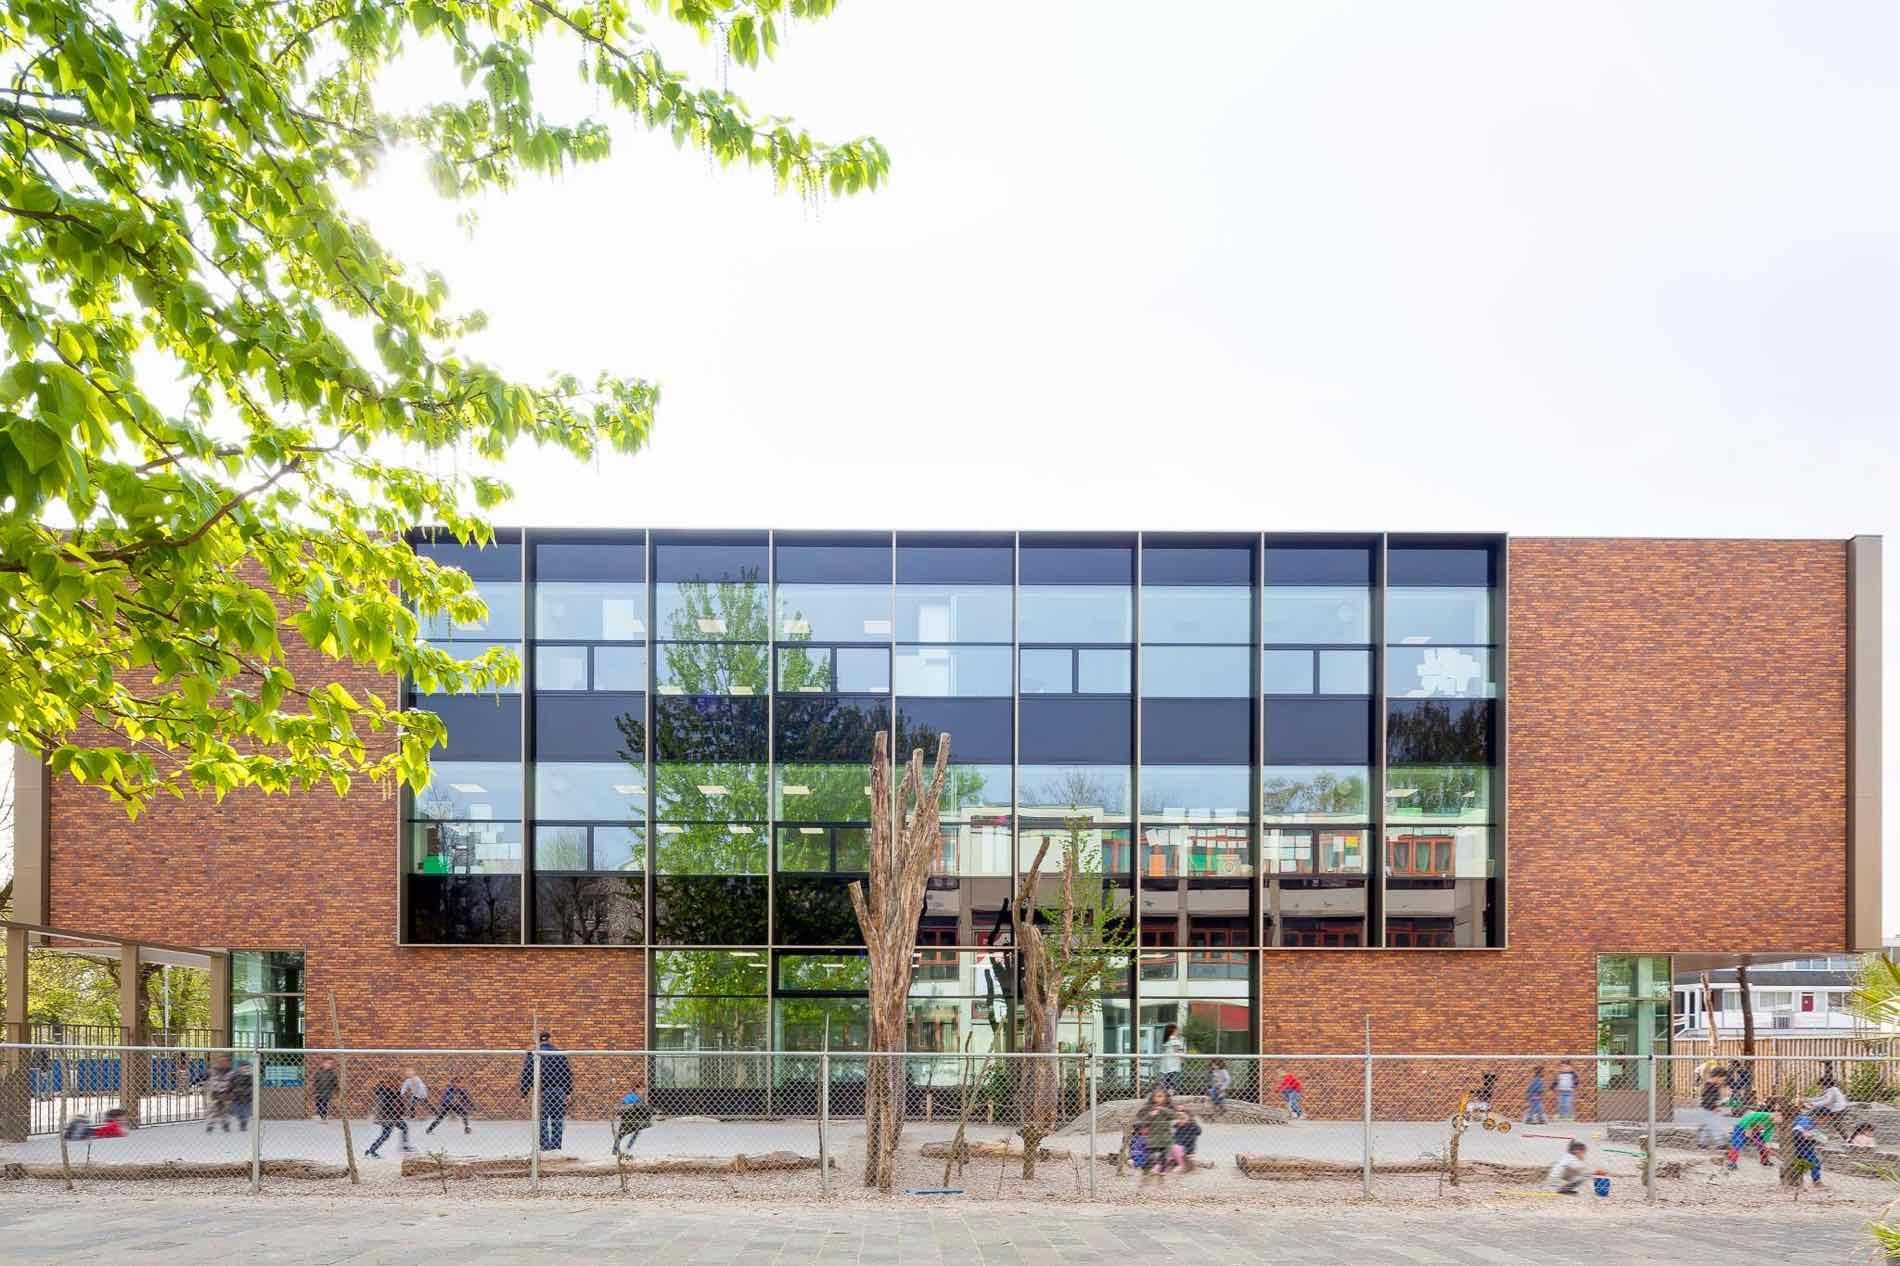 IKC Het Talent 2 Amsterdam - Paul de Ruiter architects